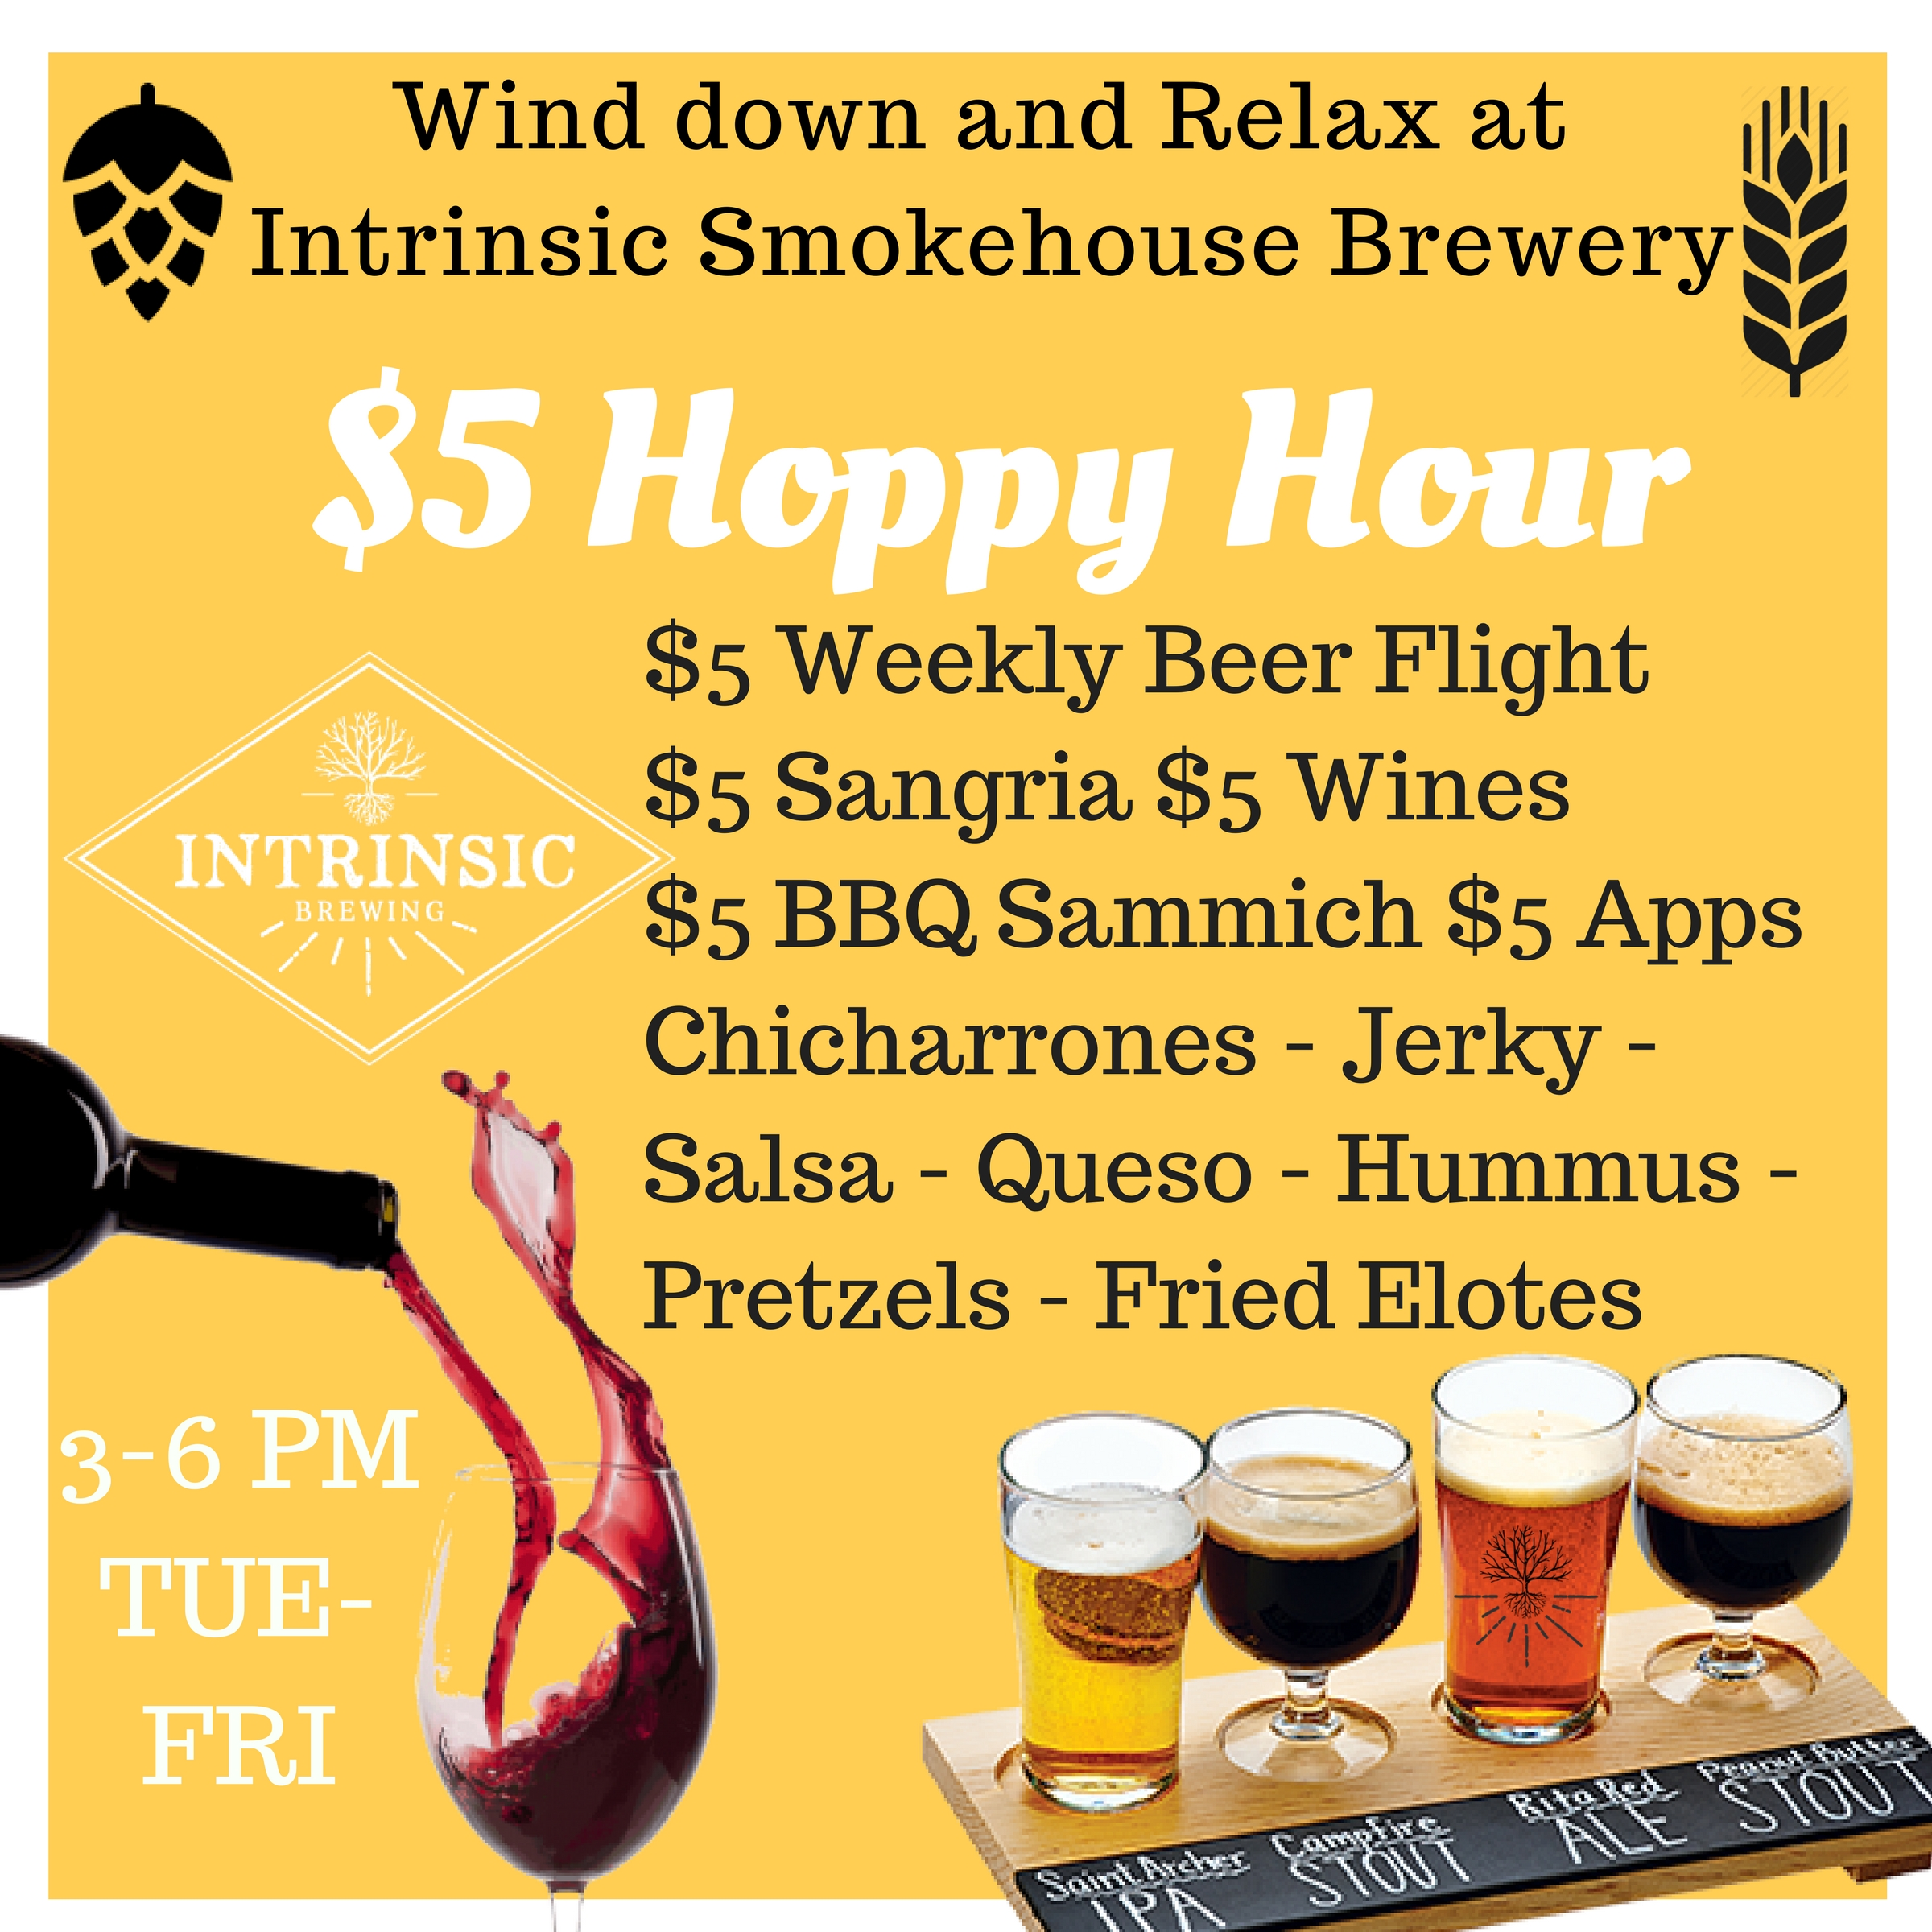 Beer Specials Happy Hour Daily Specials Intrinsic Smokehouse Brewery